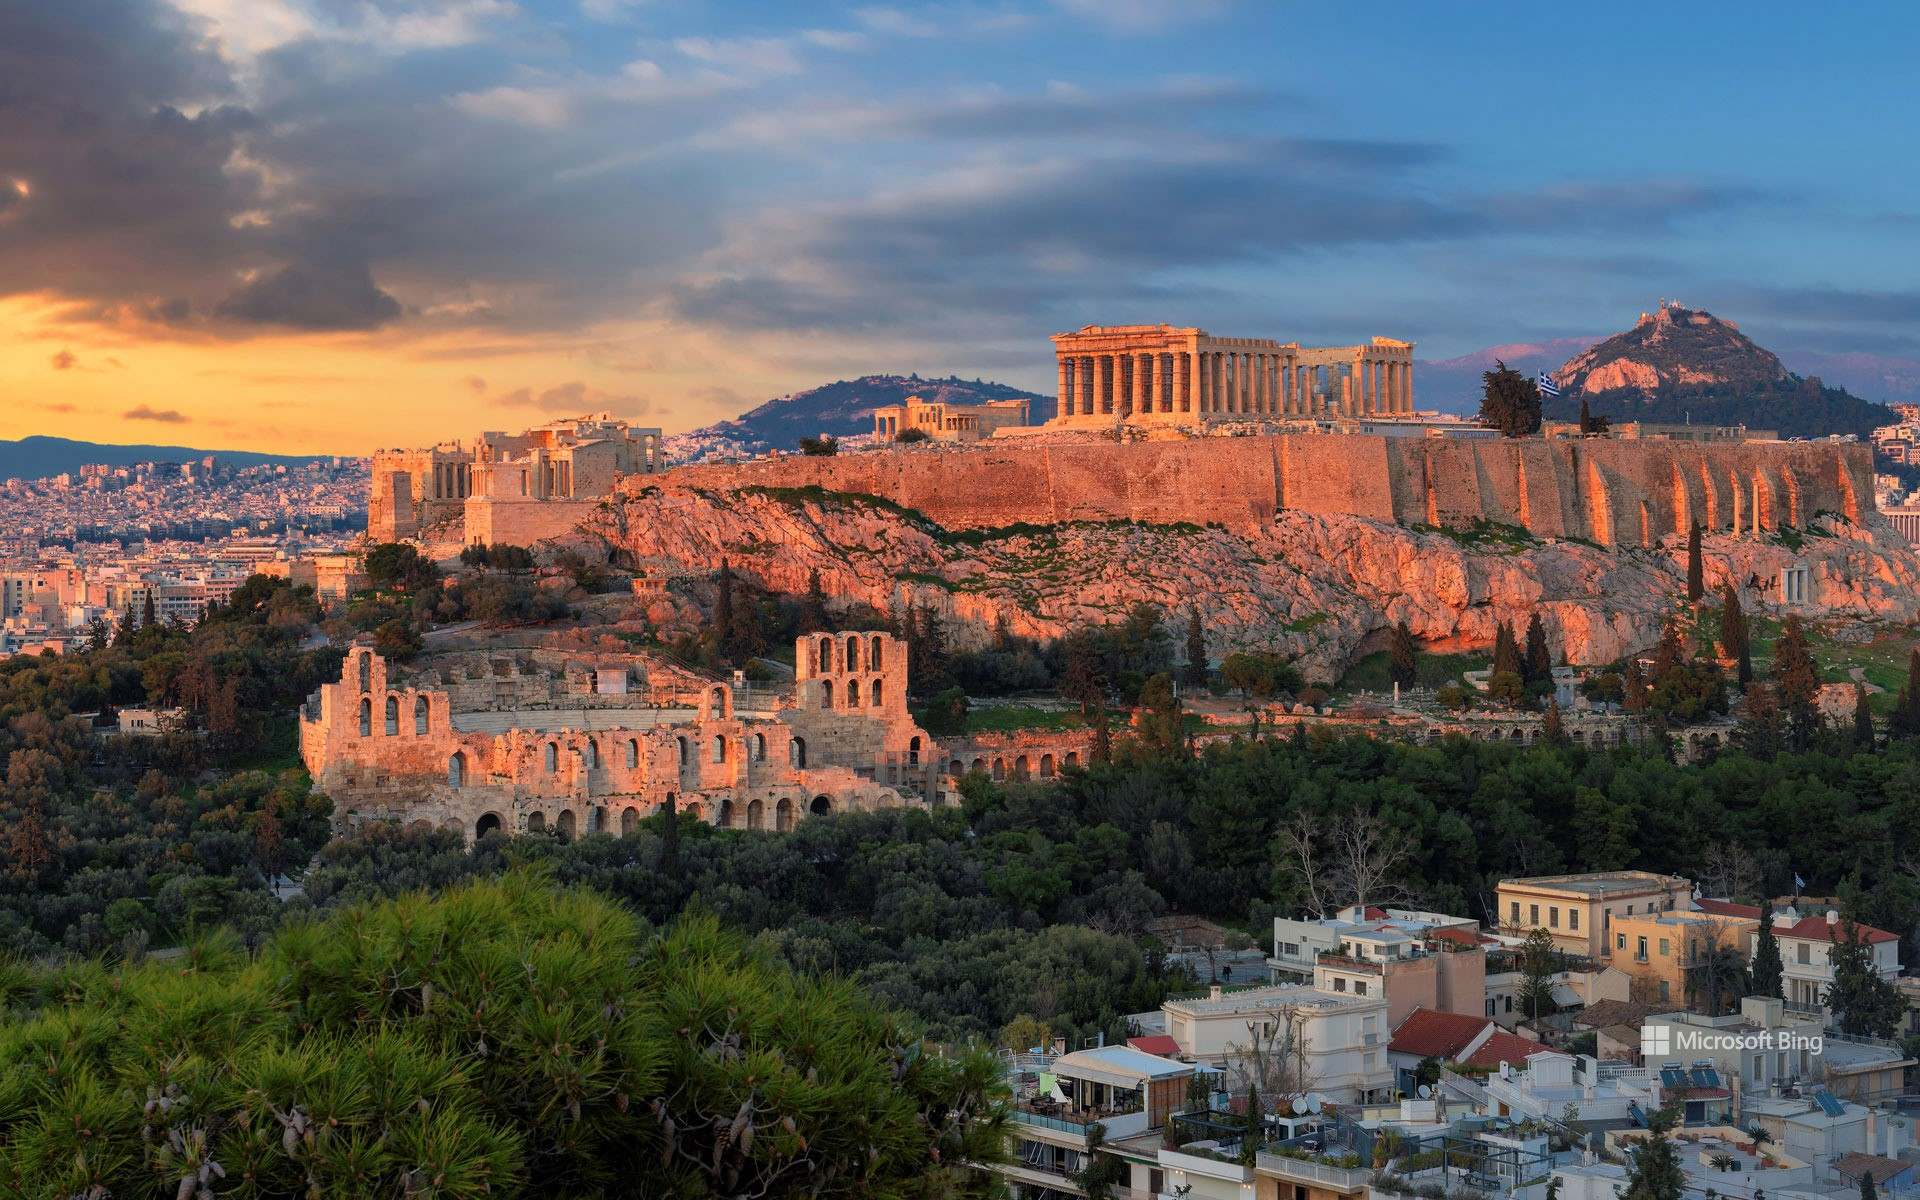 Parthenon temple, Acropolis of Athens, Greece